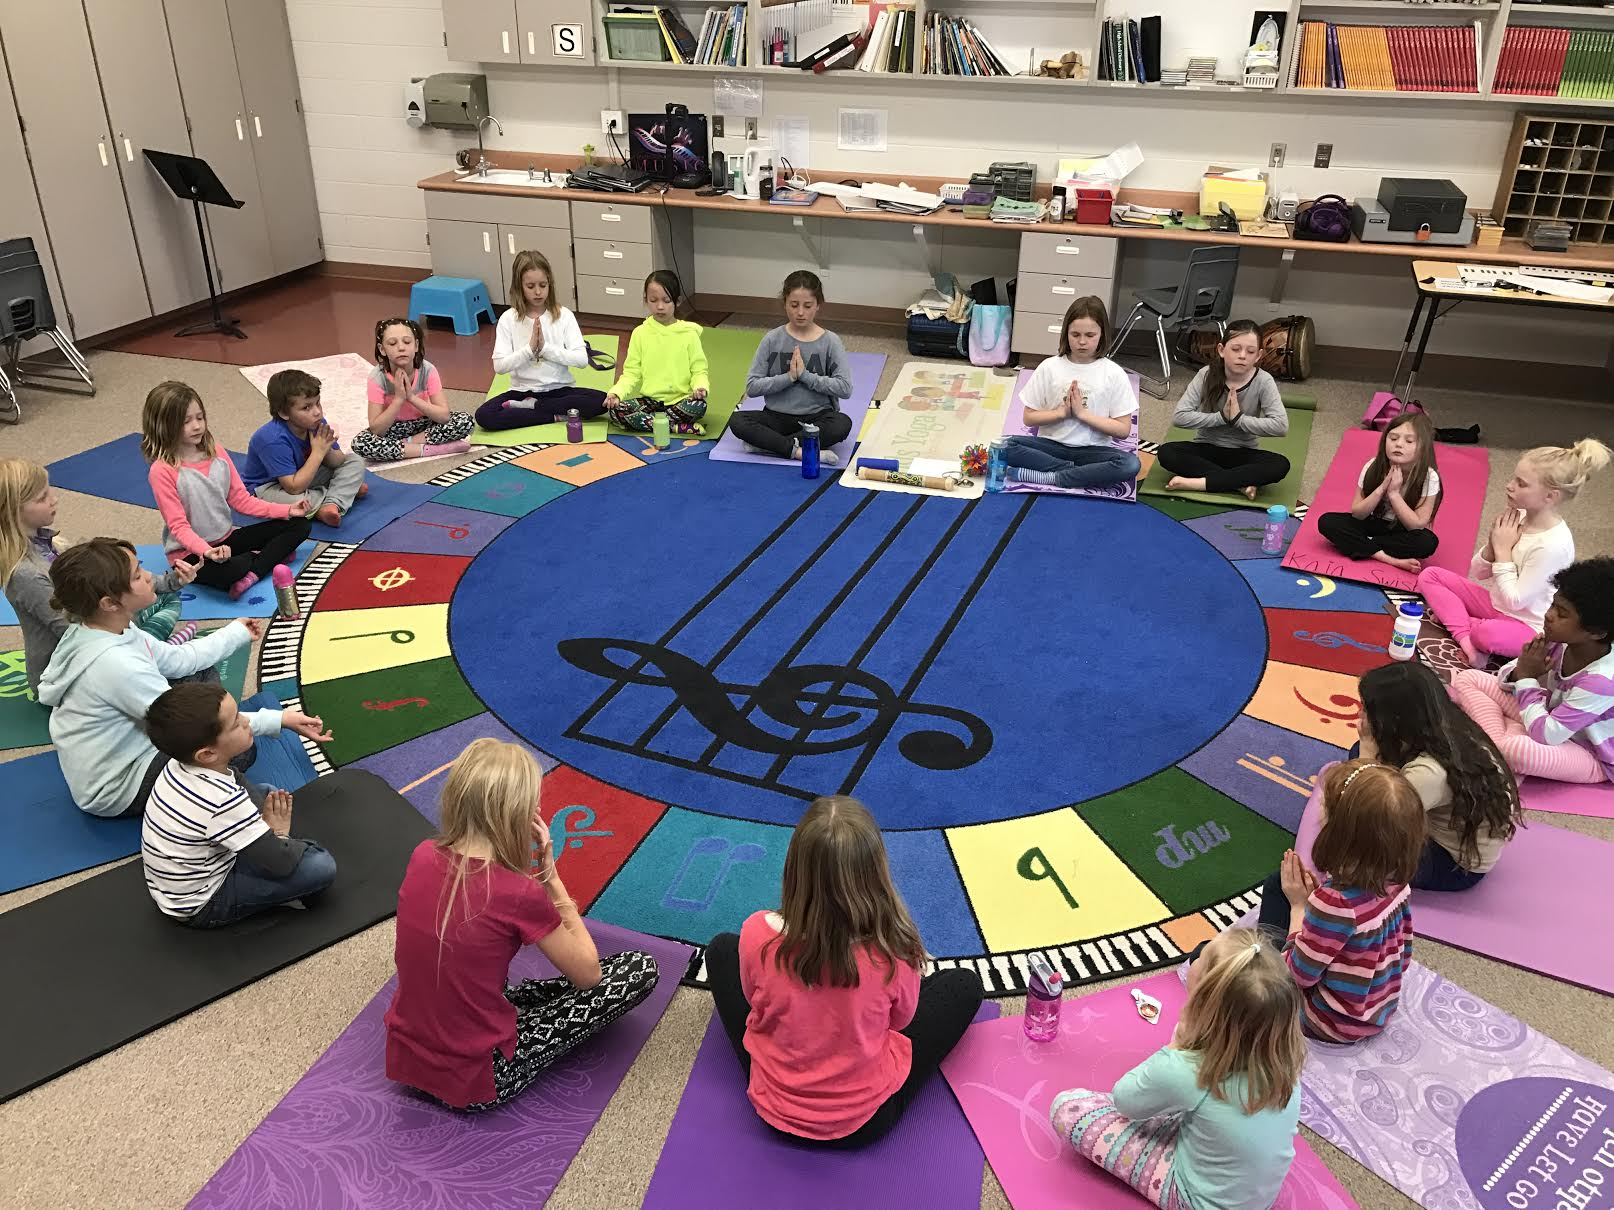 Students at Trailside Elementary School participate in a meditation led by Randi Jo Taurel in May. (Photo by Randi Jo Taurel)